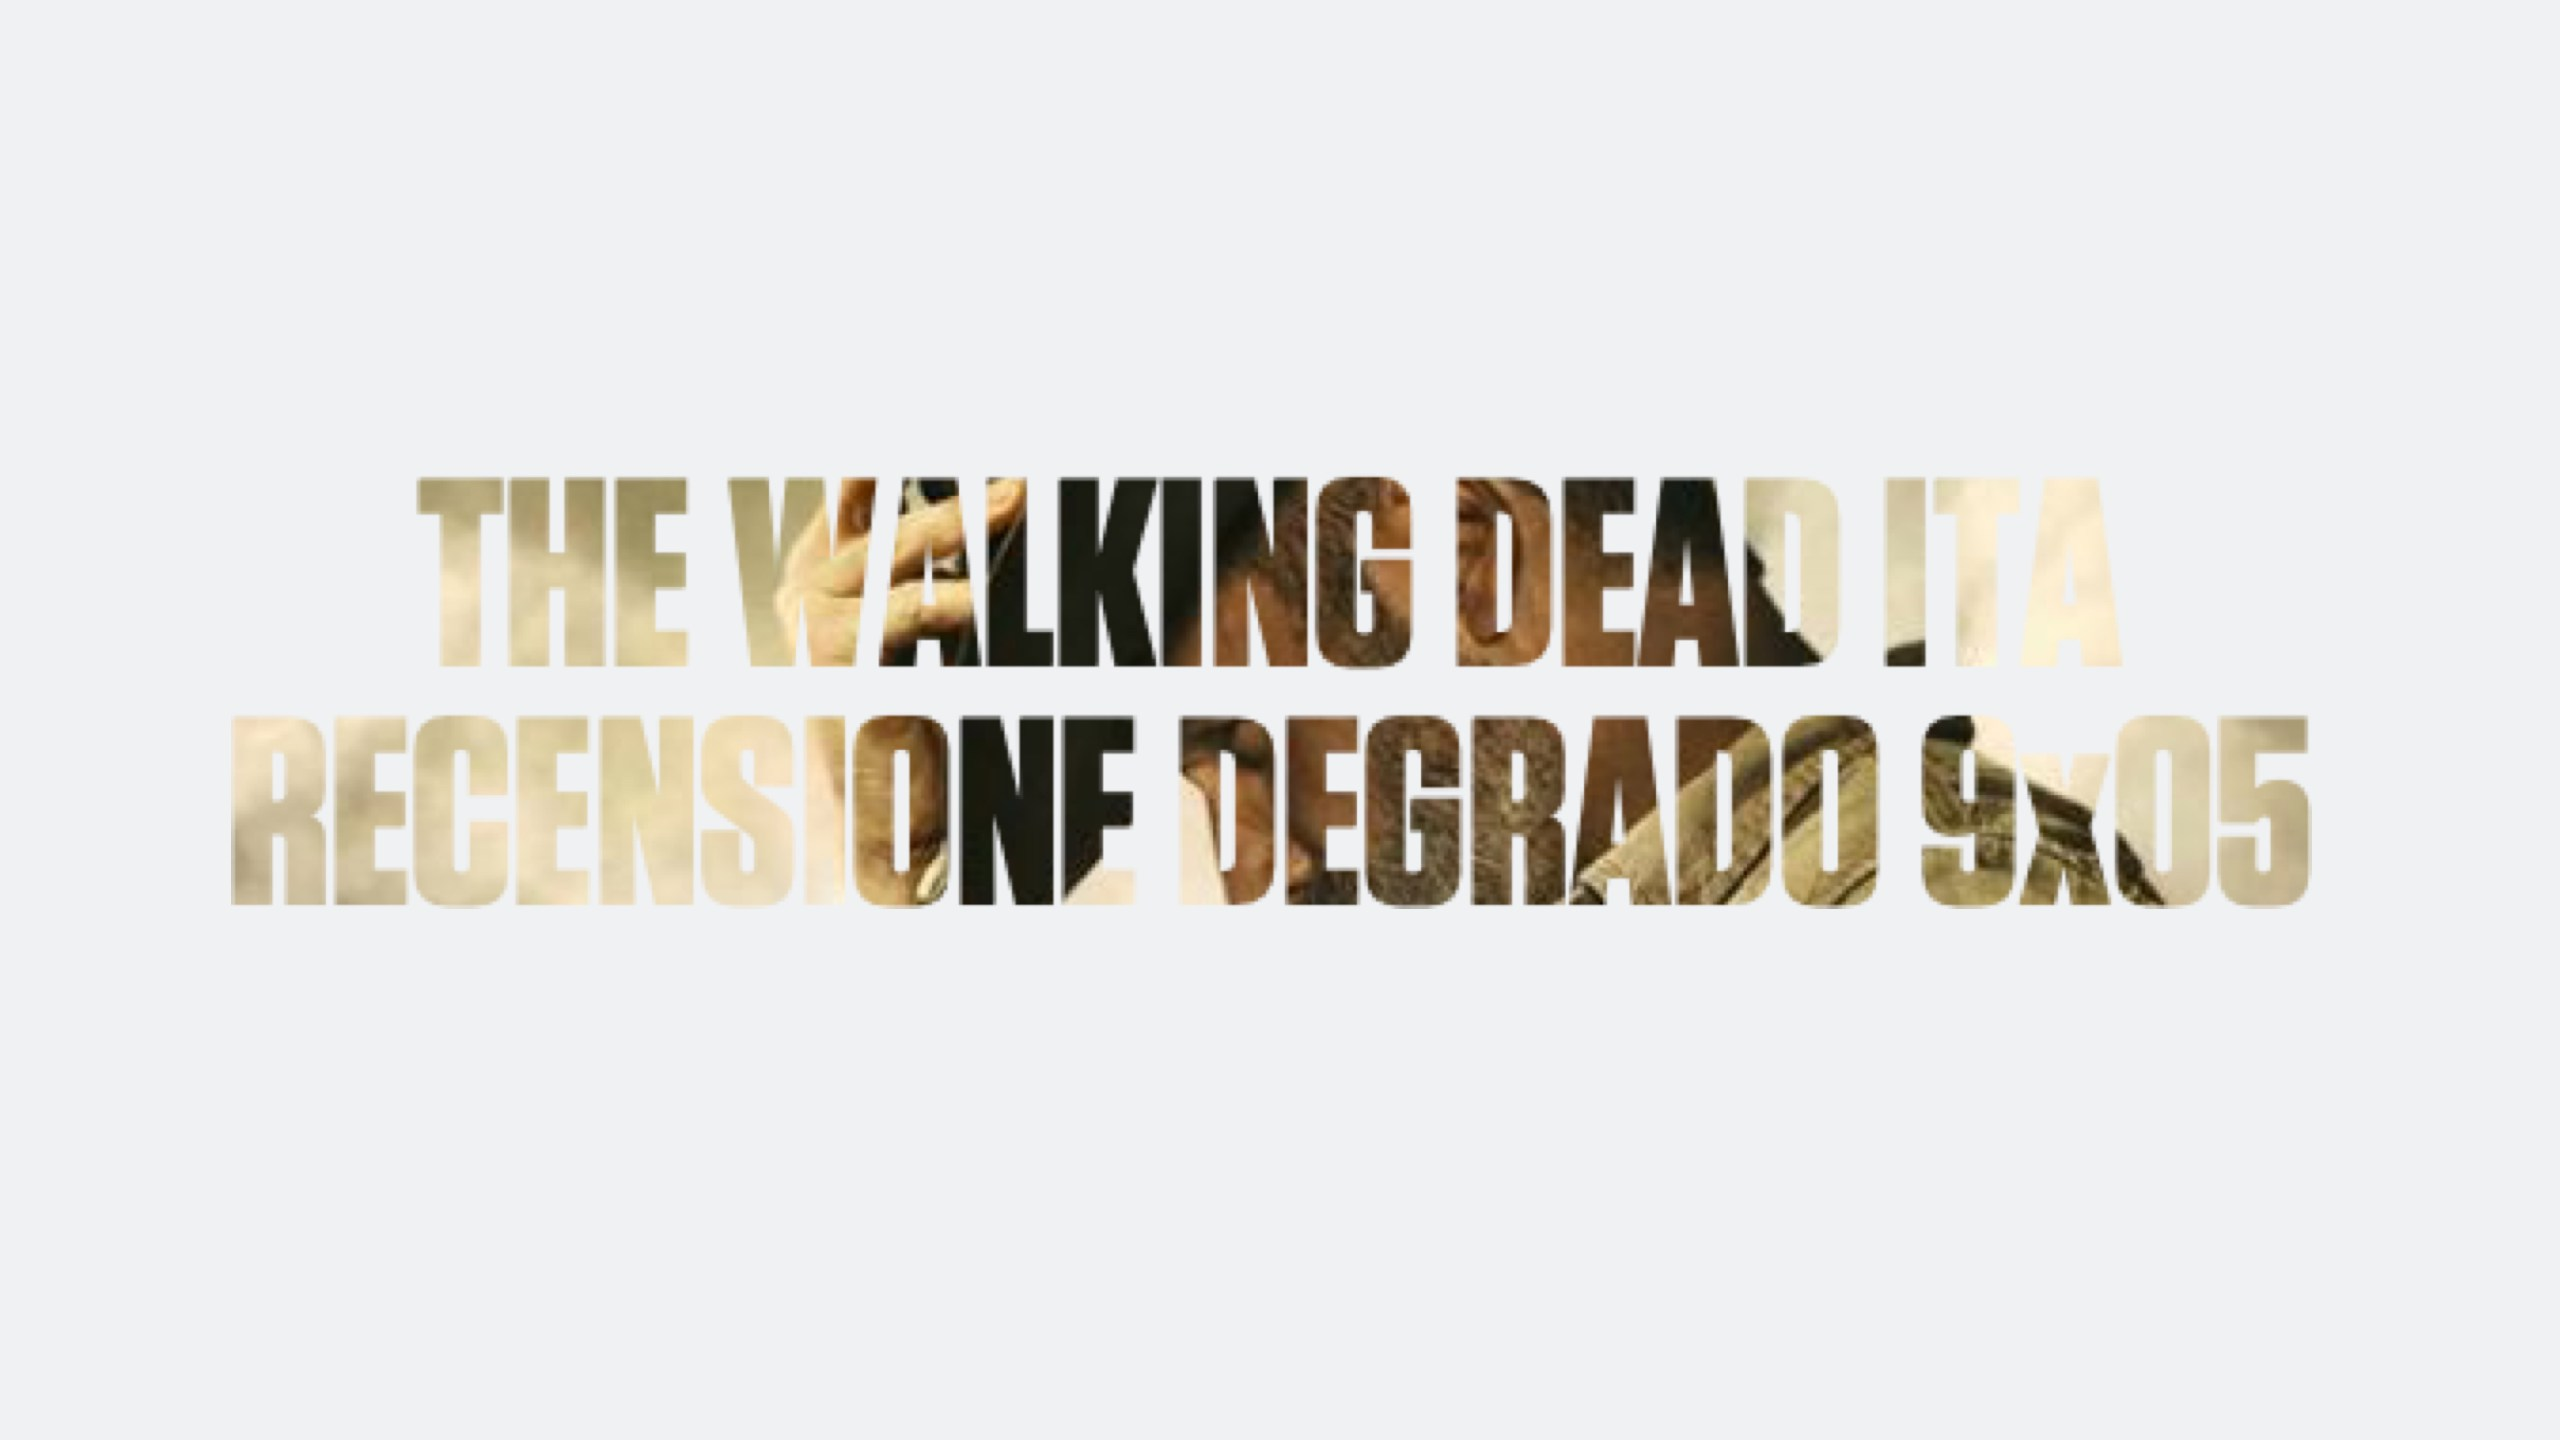 Recensione Degrado The Walking Dead 9×05